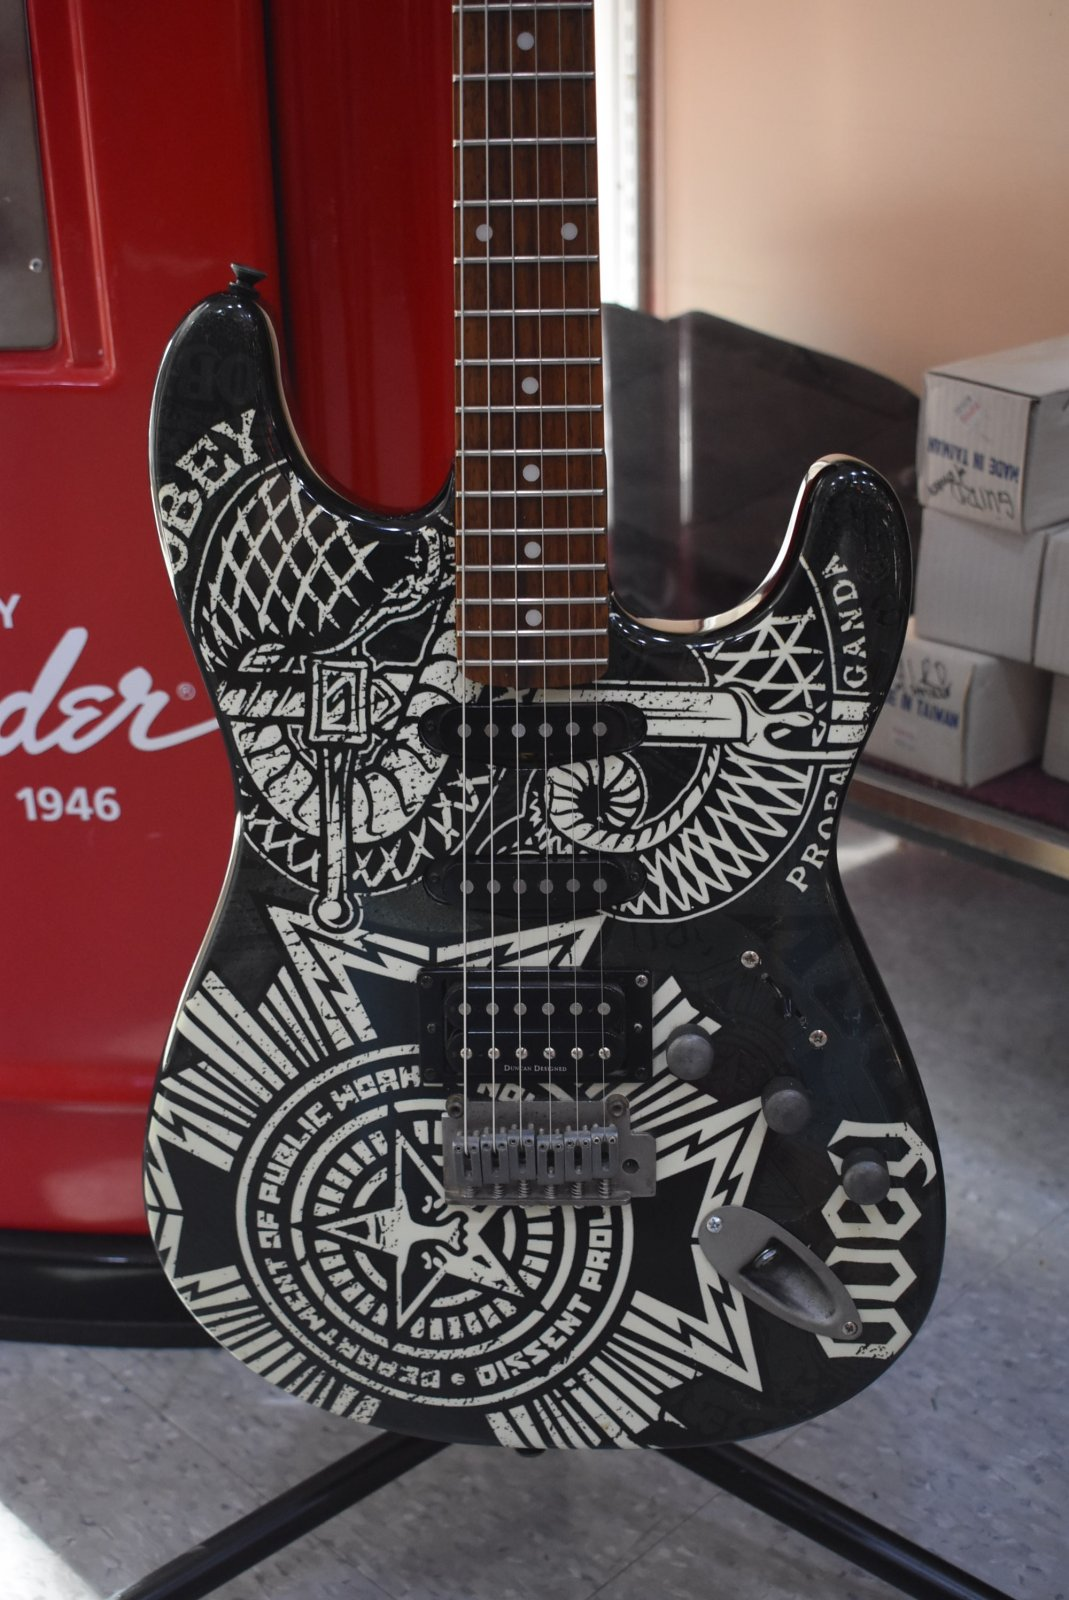 2006 Squier Obey Dissent Graphic Stratocaster